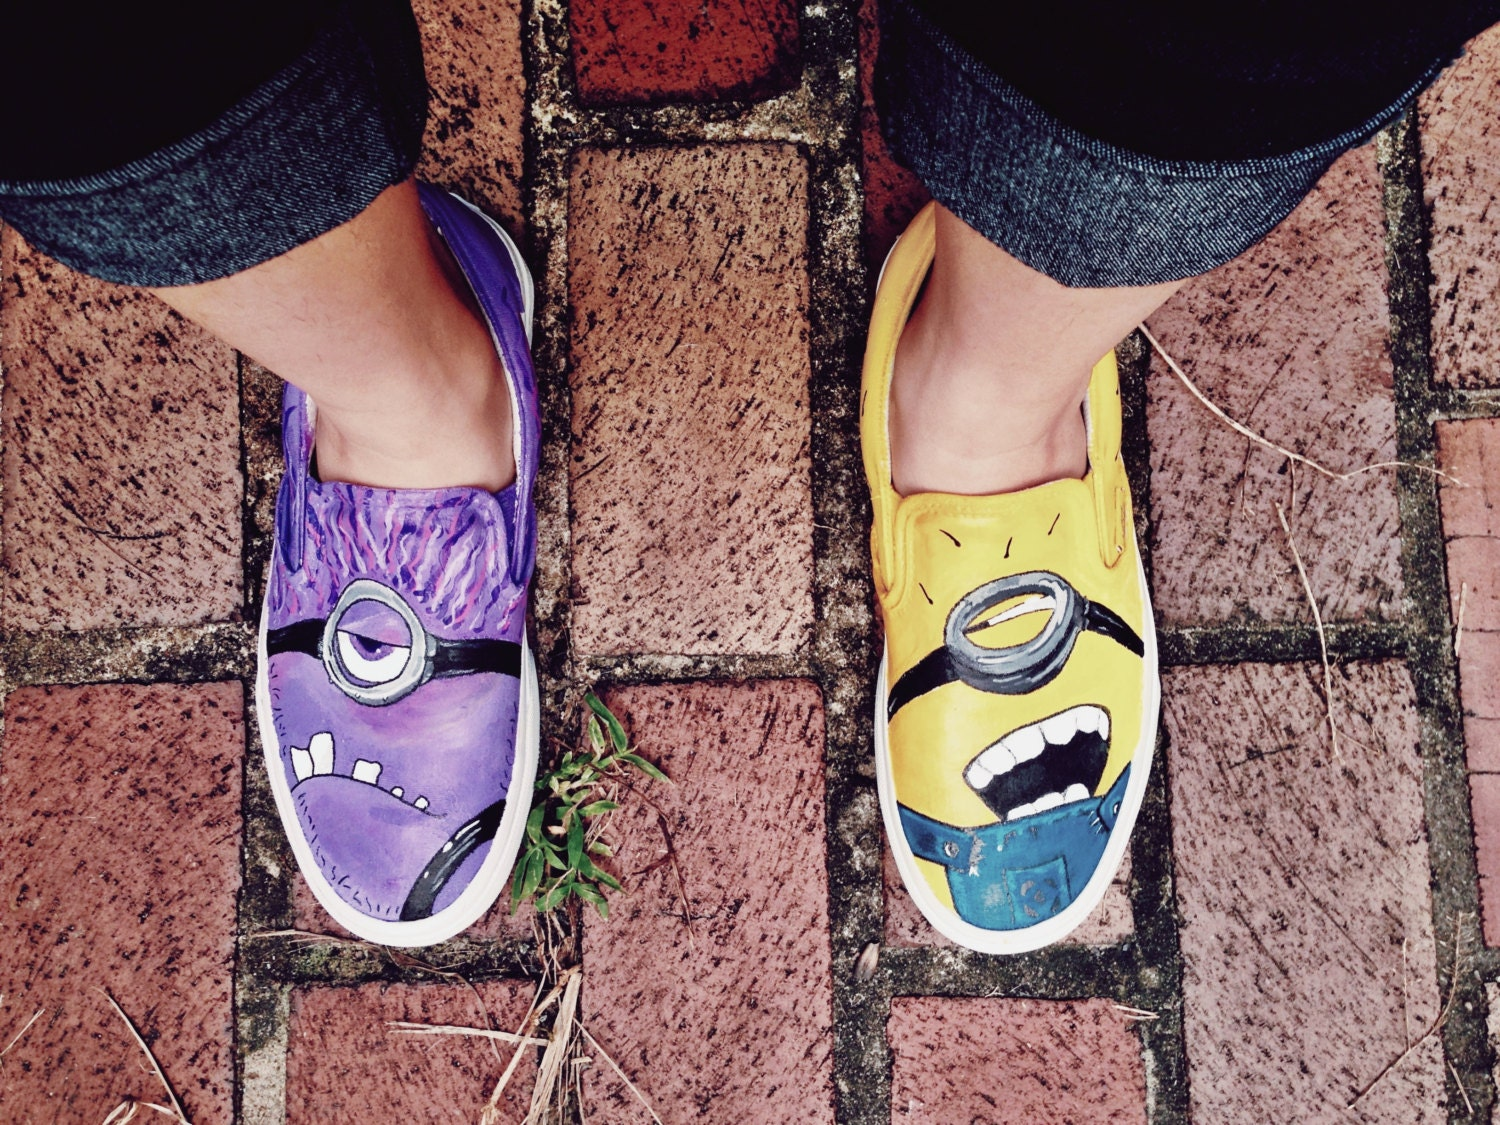 Custom Hand-Painted Despicable Me Minion Vans Shoes (Shoes NOT included)